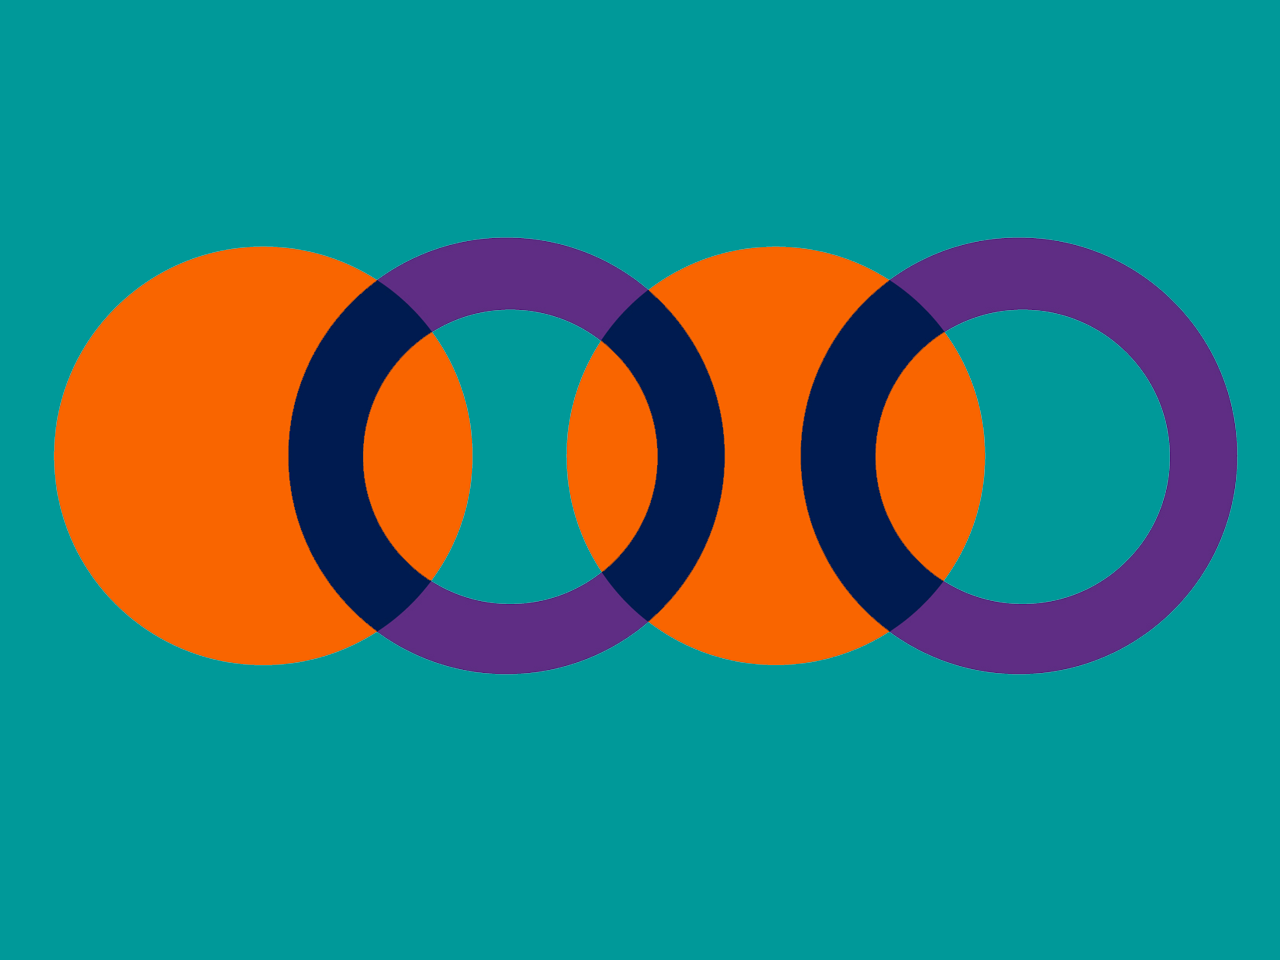 Teal background with orange circles and purple hoops overlapping